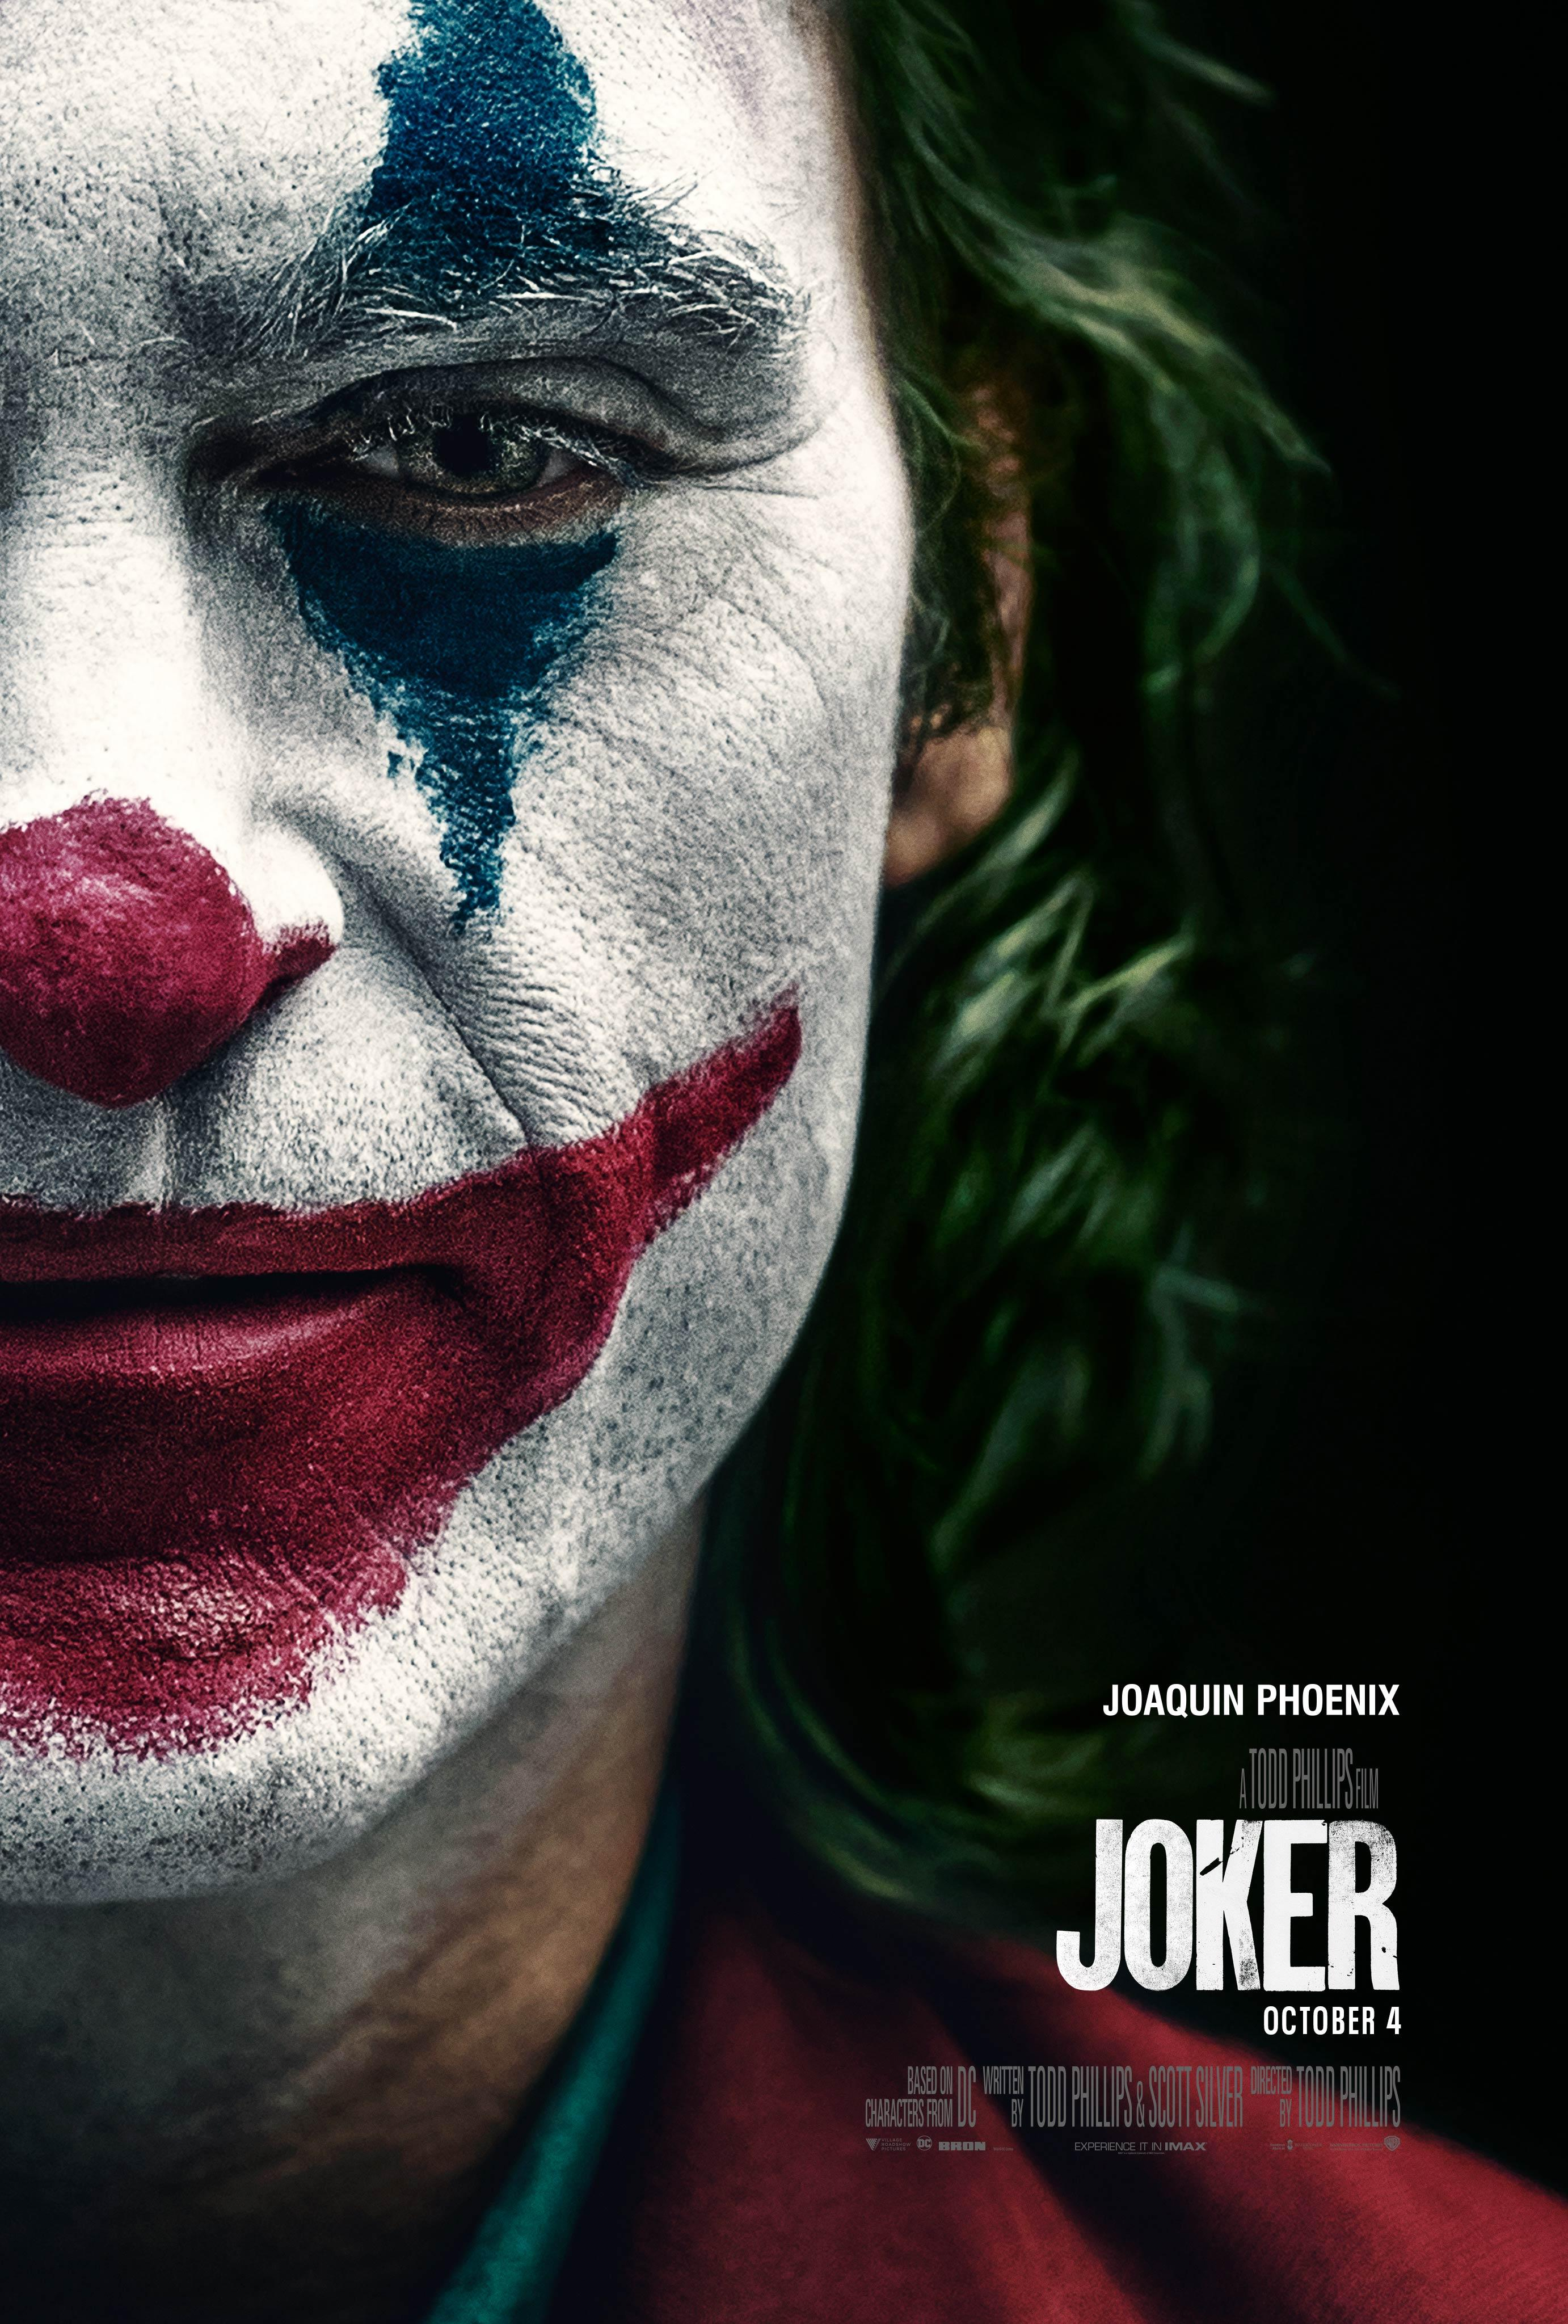 The final poster for Joker. (Warner Bros.)